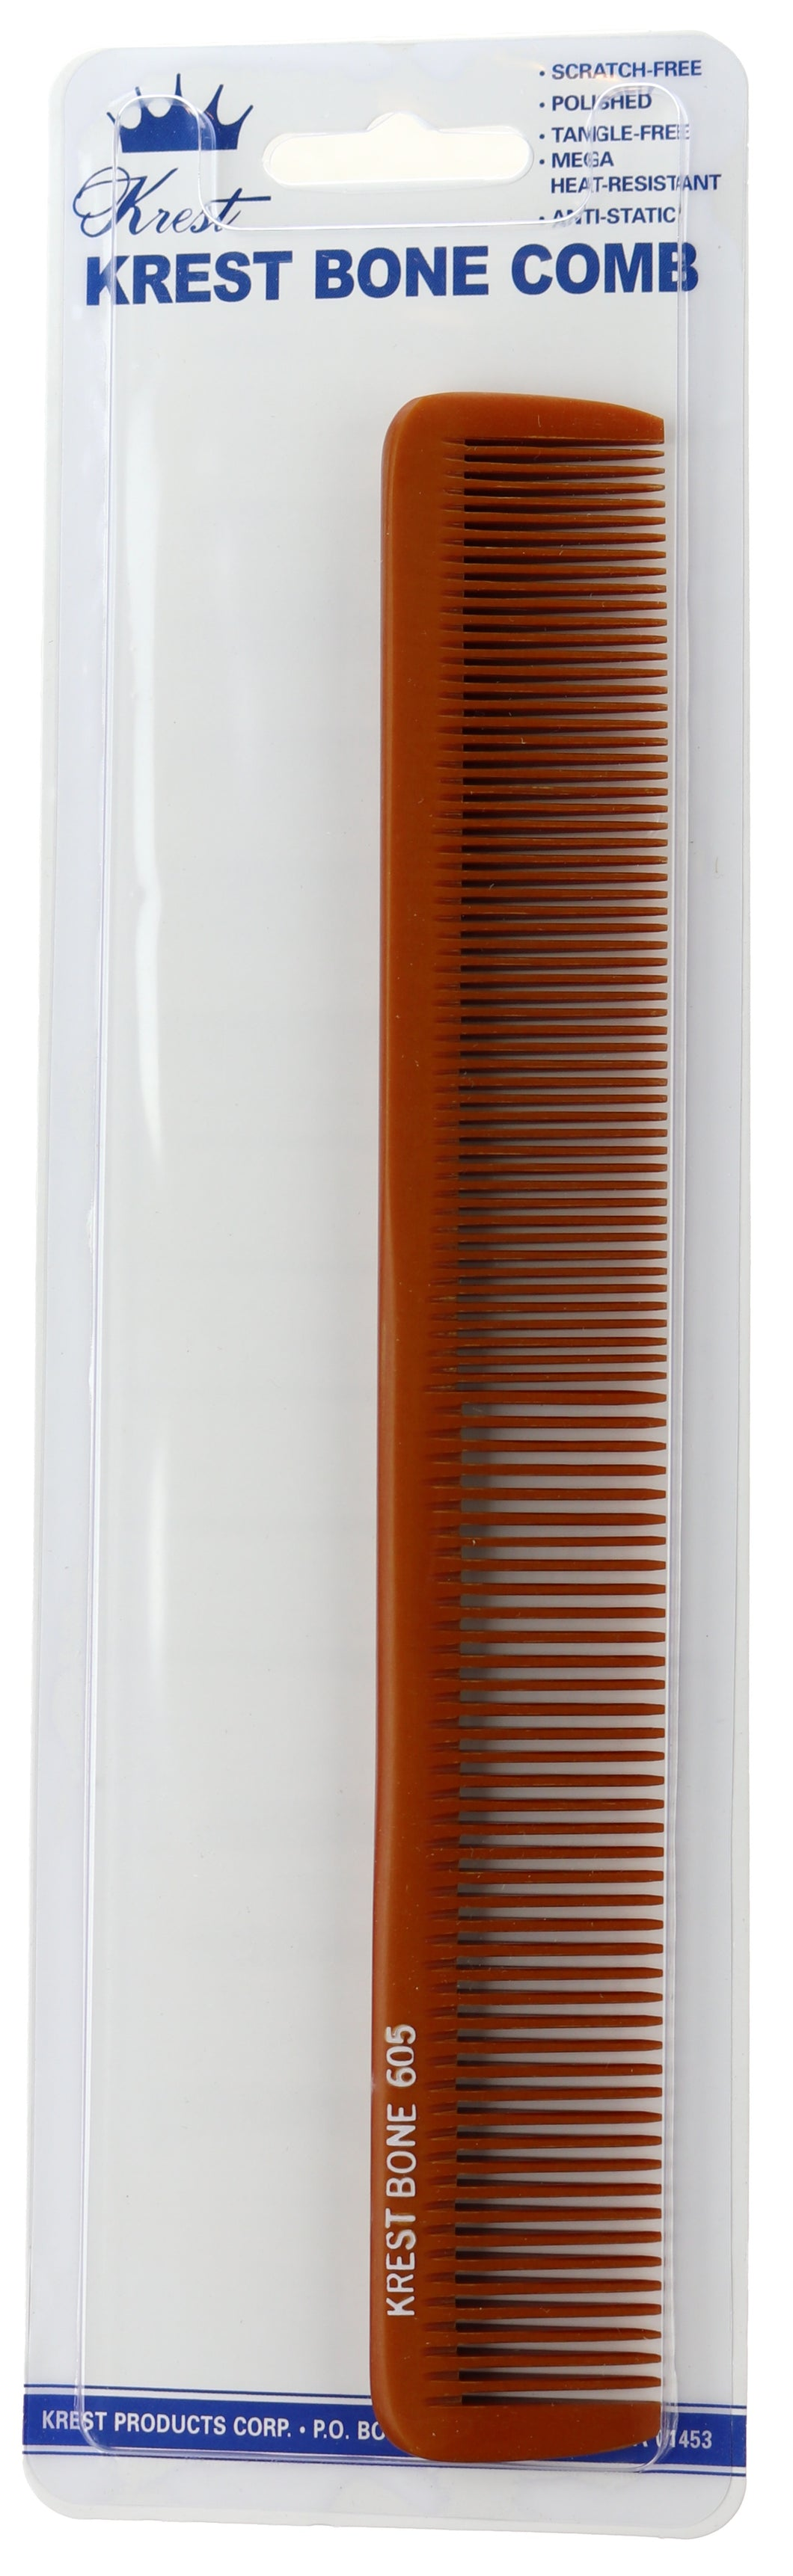 Krest Bone Comb 8-1/2 In. Heat Resistant Comb. Stylist Combs. Flat Iron Comb